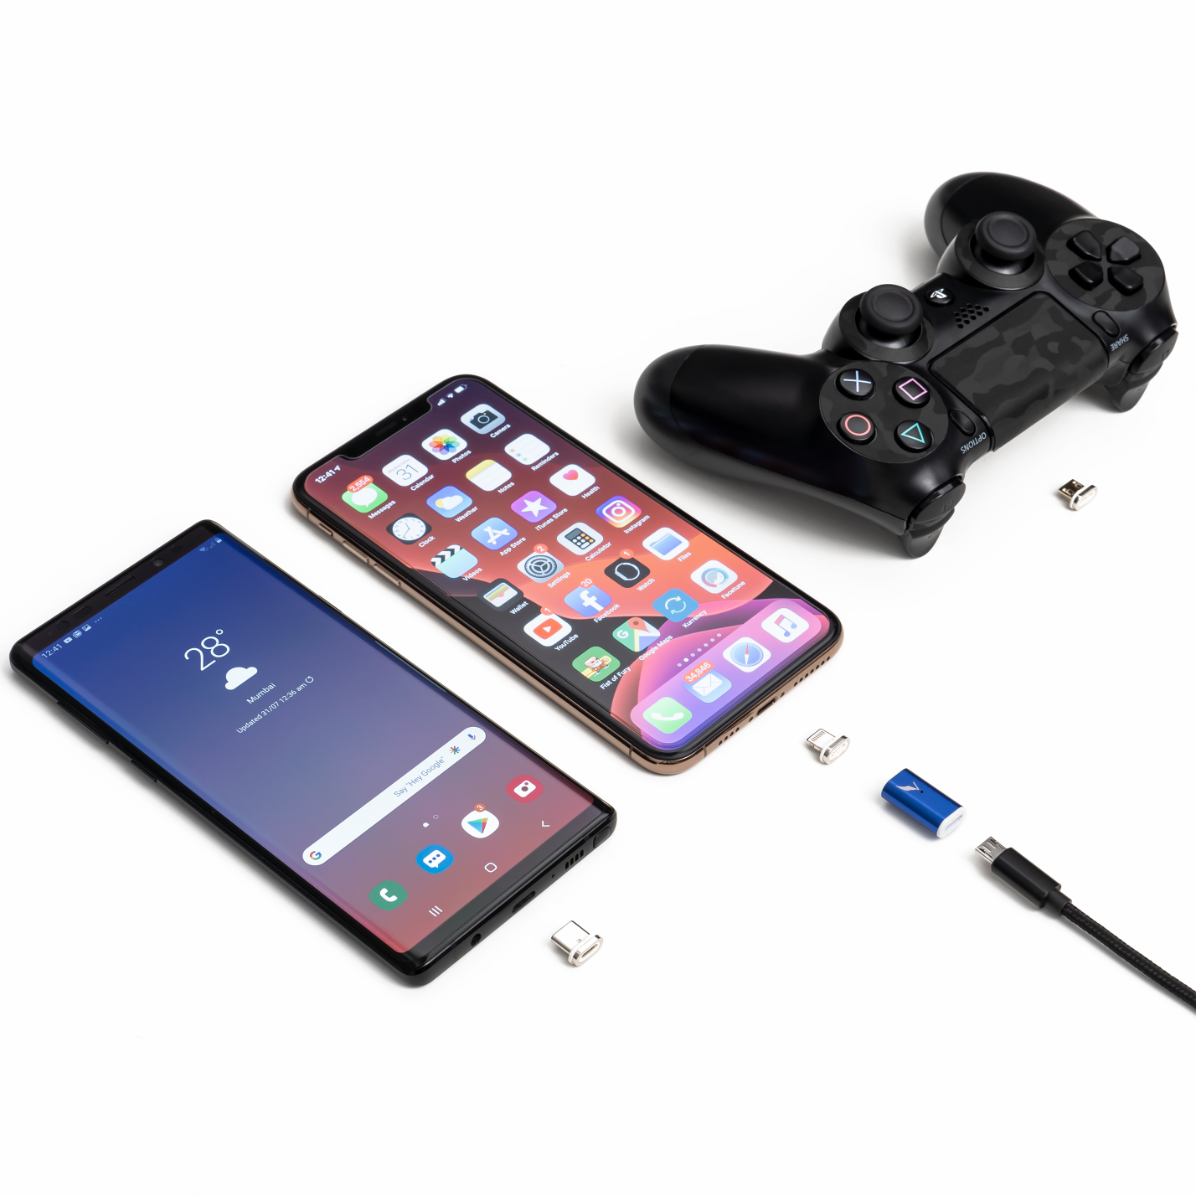 VOLTA Magnetic Adapter 2 0 - Charge Any USB Device | Indiegogo